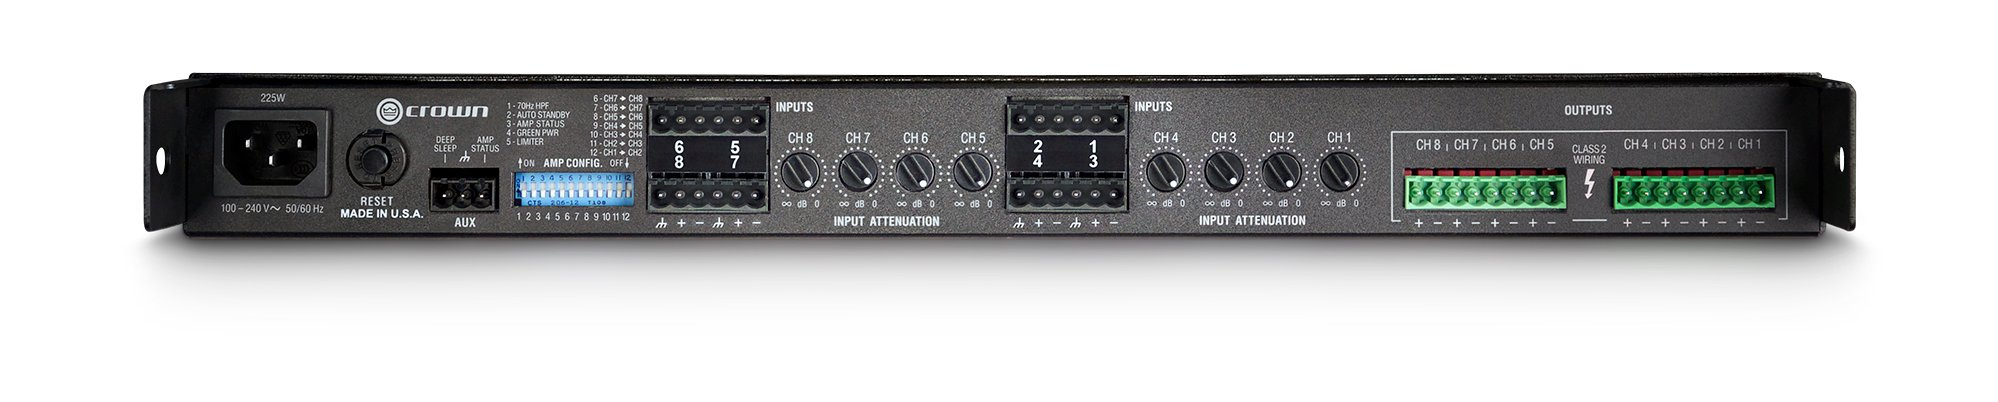 ComTech DriveCore 75W @ 8 Ohms 8-Channel Power Amp